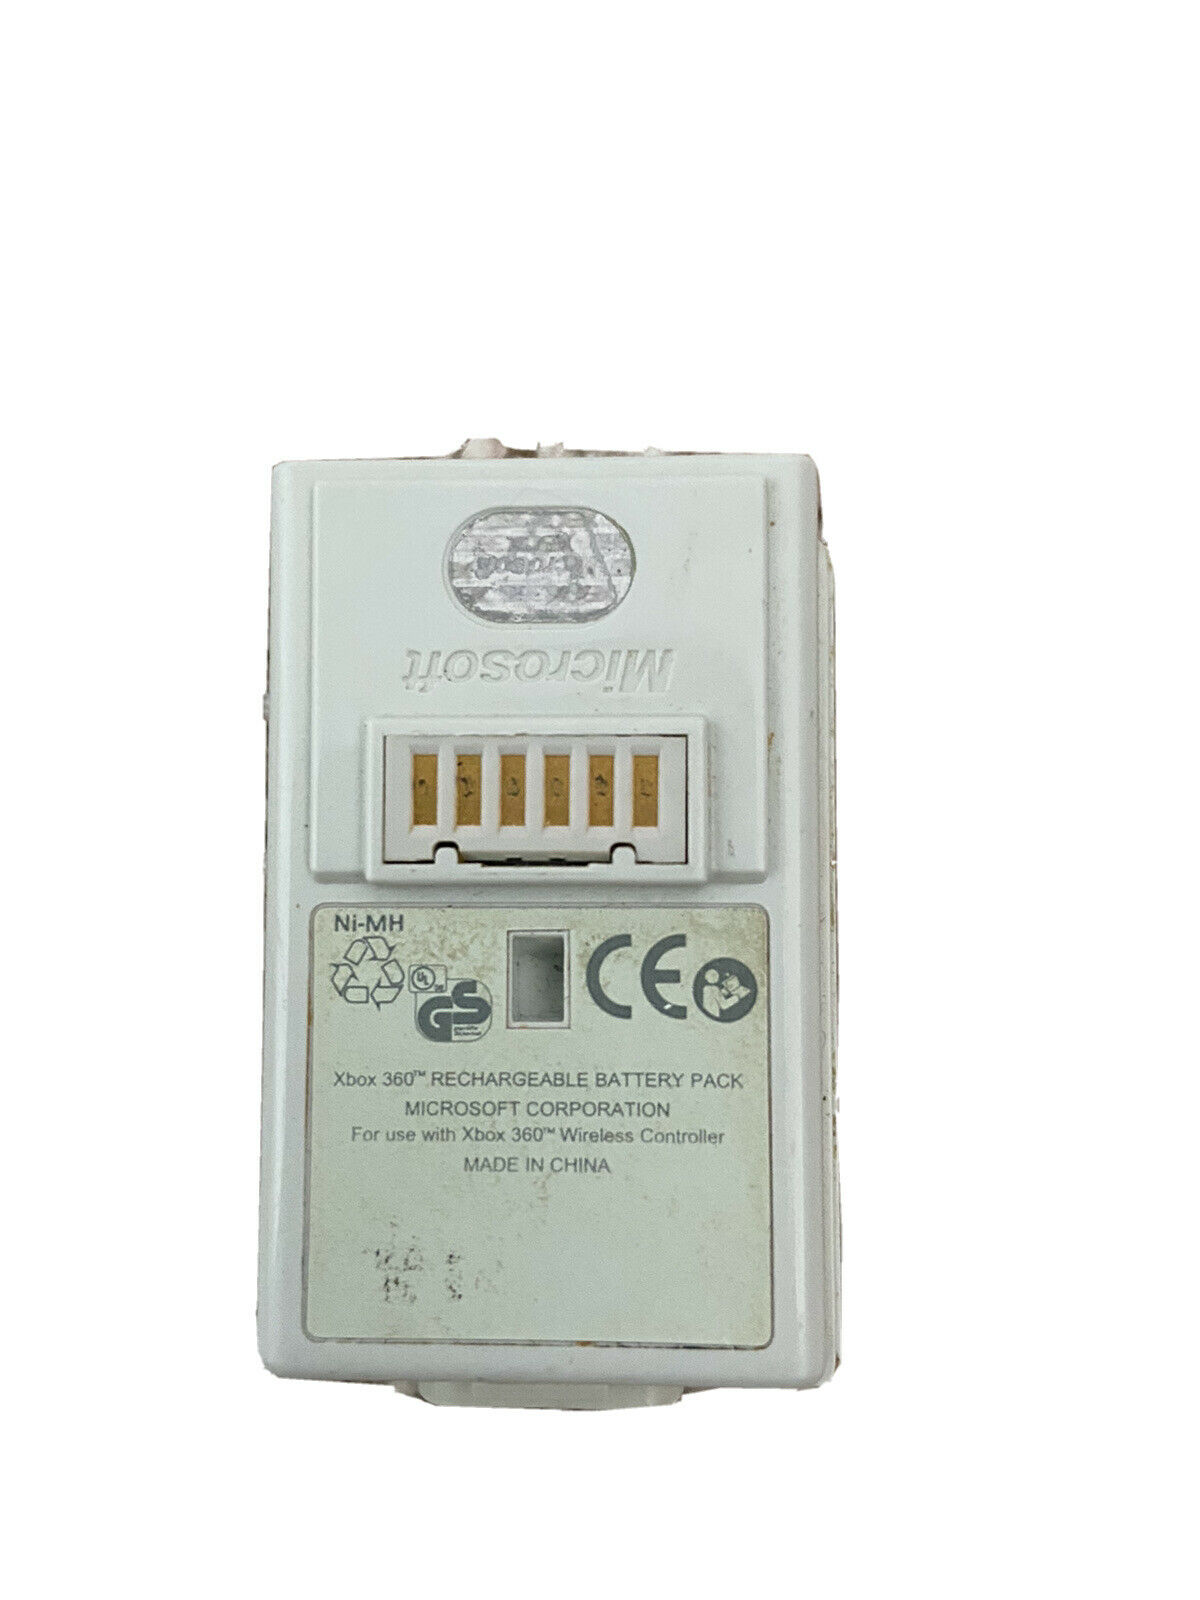 Official White Microsoft Xbox 360 Rechargable Battery Pack For Controller